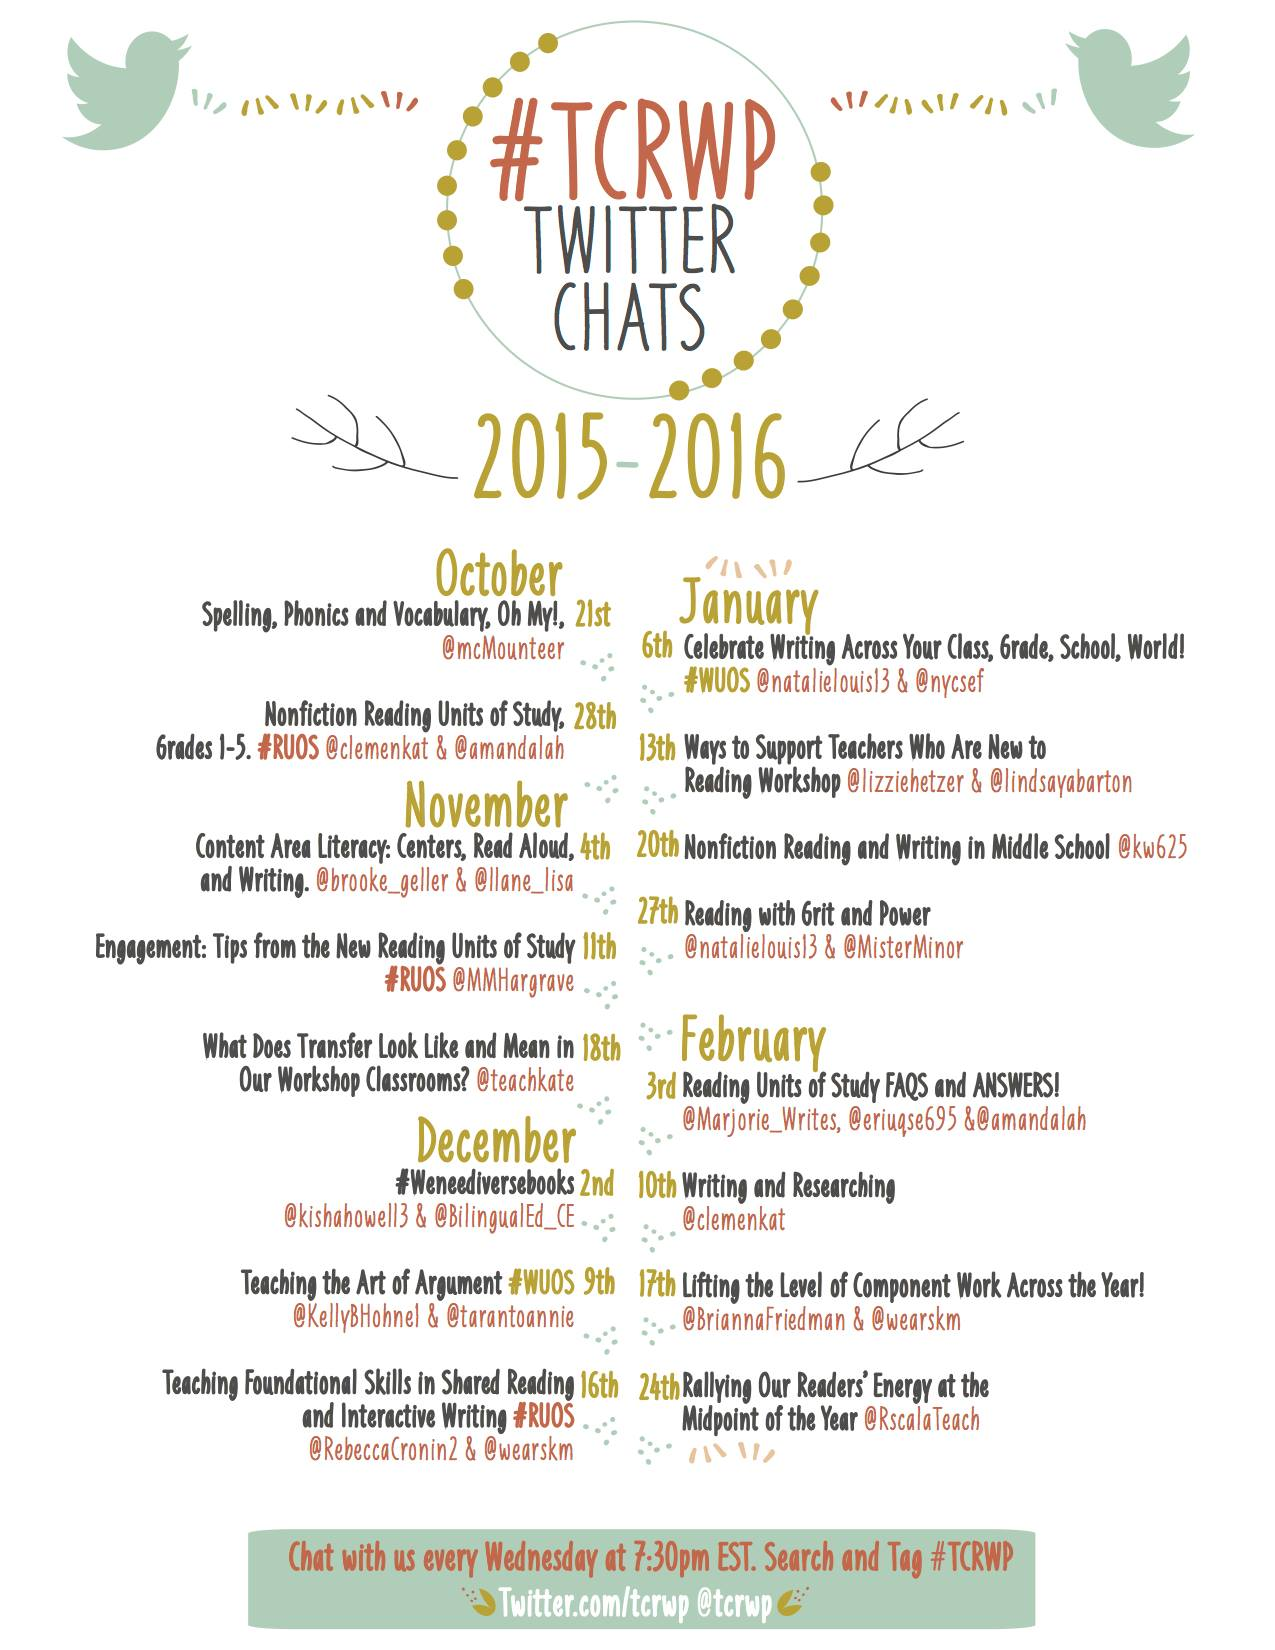 TCRWP Twitter Chat: Reading UOS FAQs and ANSWERS